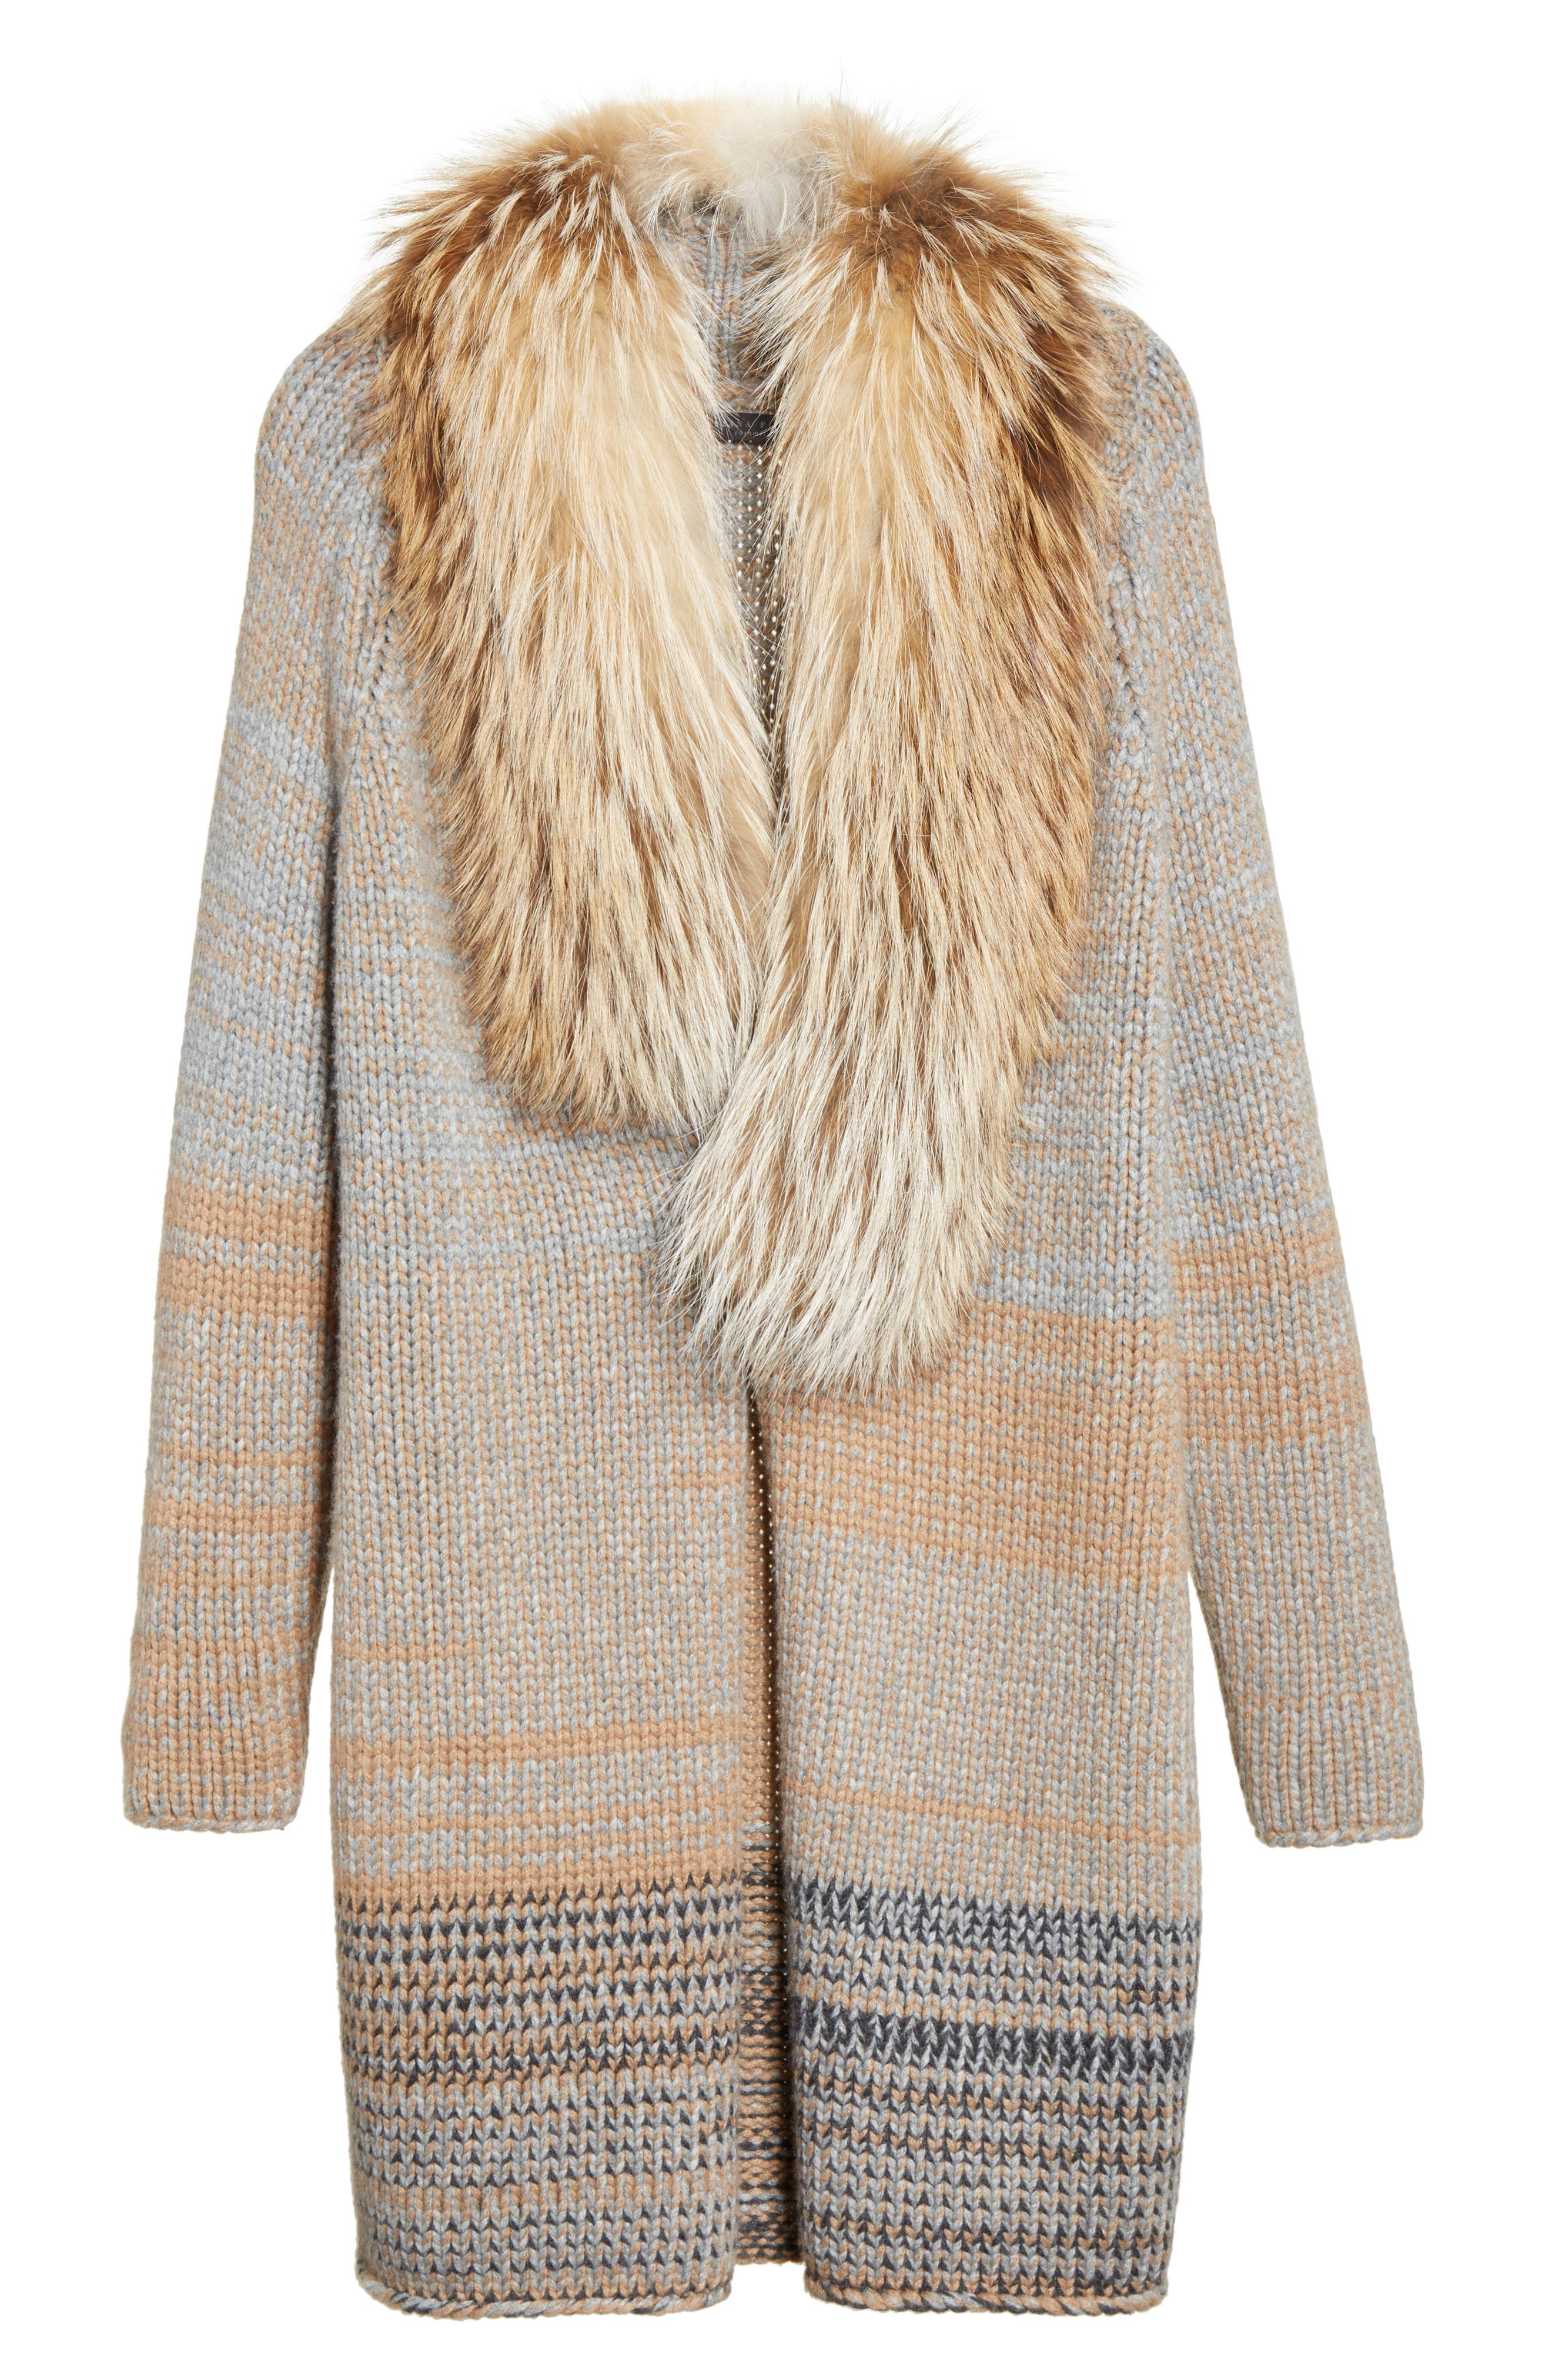 Cashmere Cardigan with Removable Genuine Fox Fur Collar,                             Alternate thumbnail 5, color,                             Camel / Grey Multi